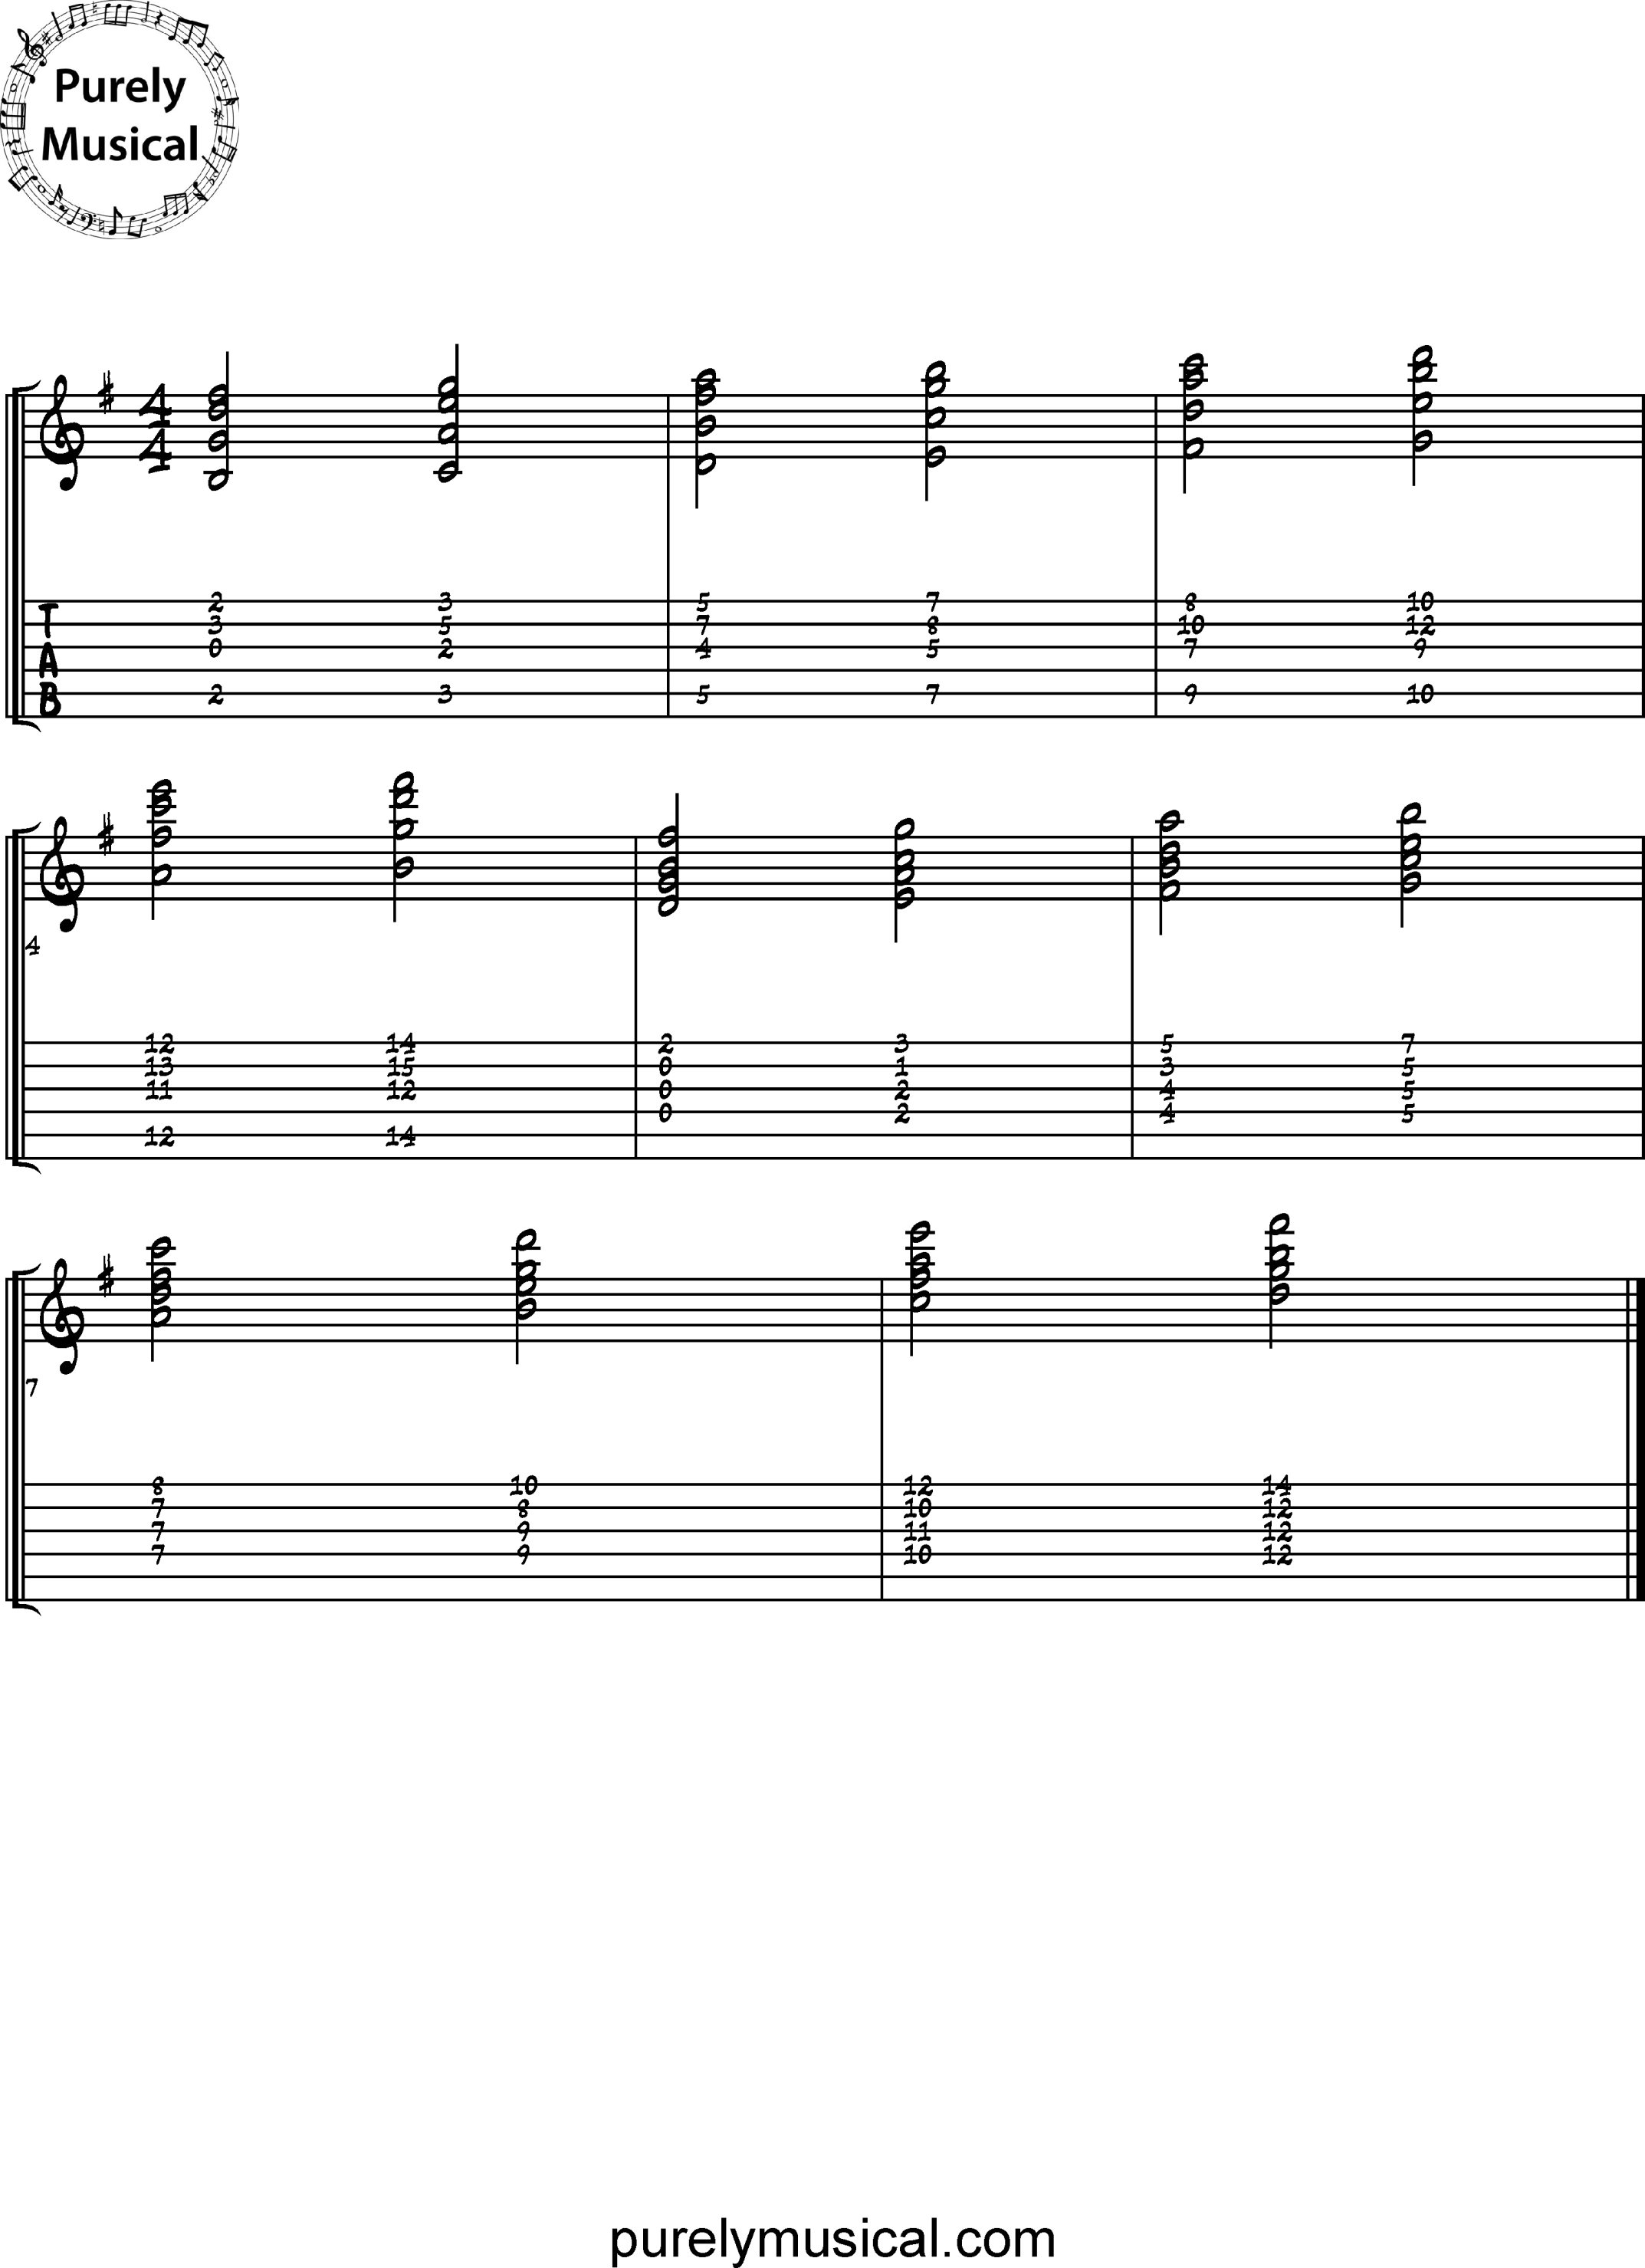 Intermediate  Chords G Chord Scale Drop 2 & Drop 4